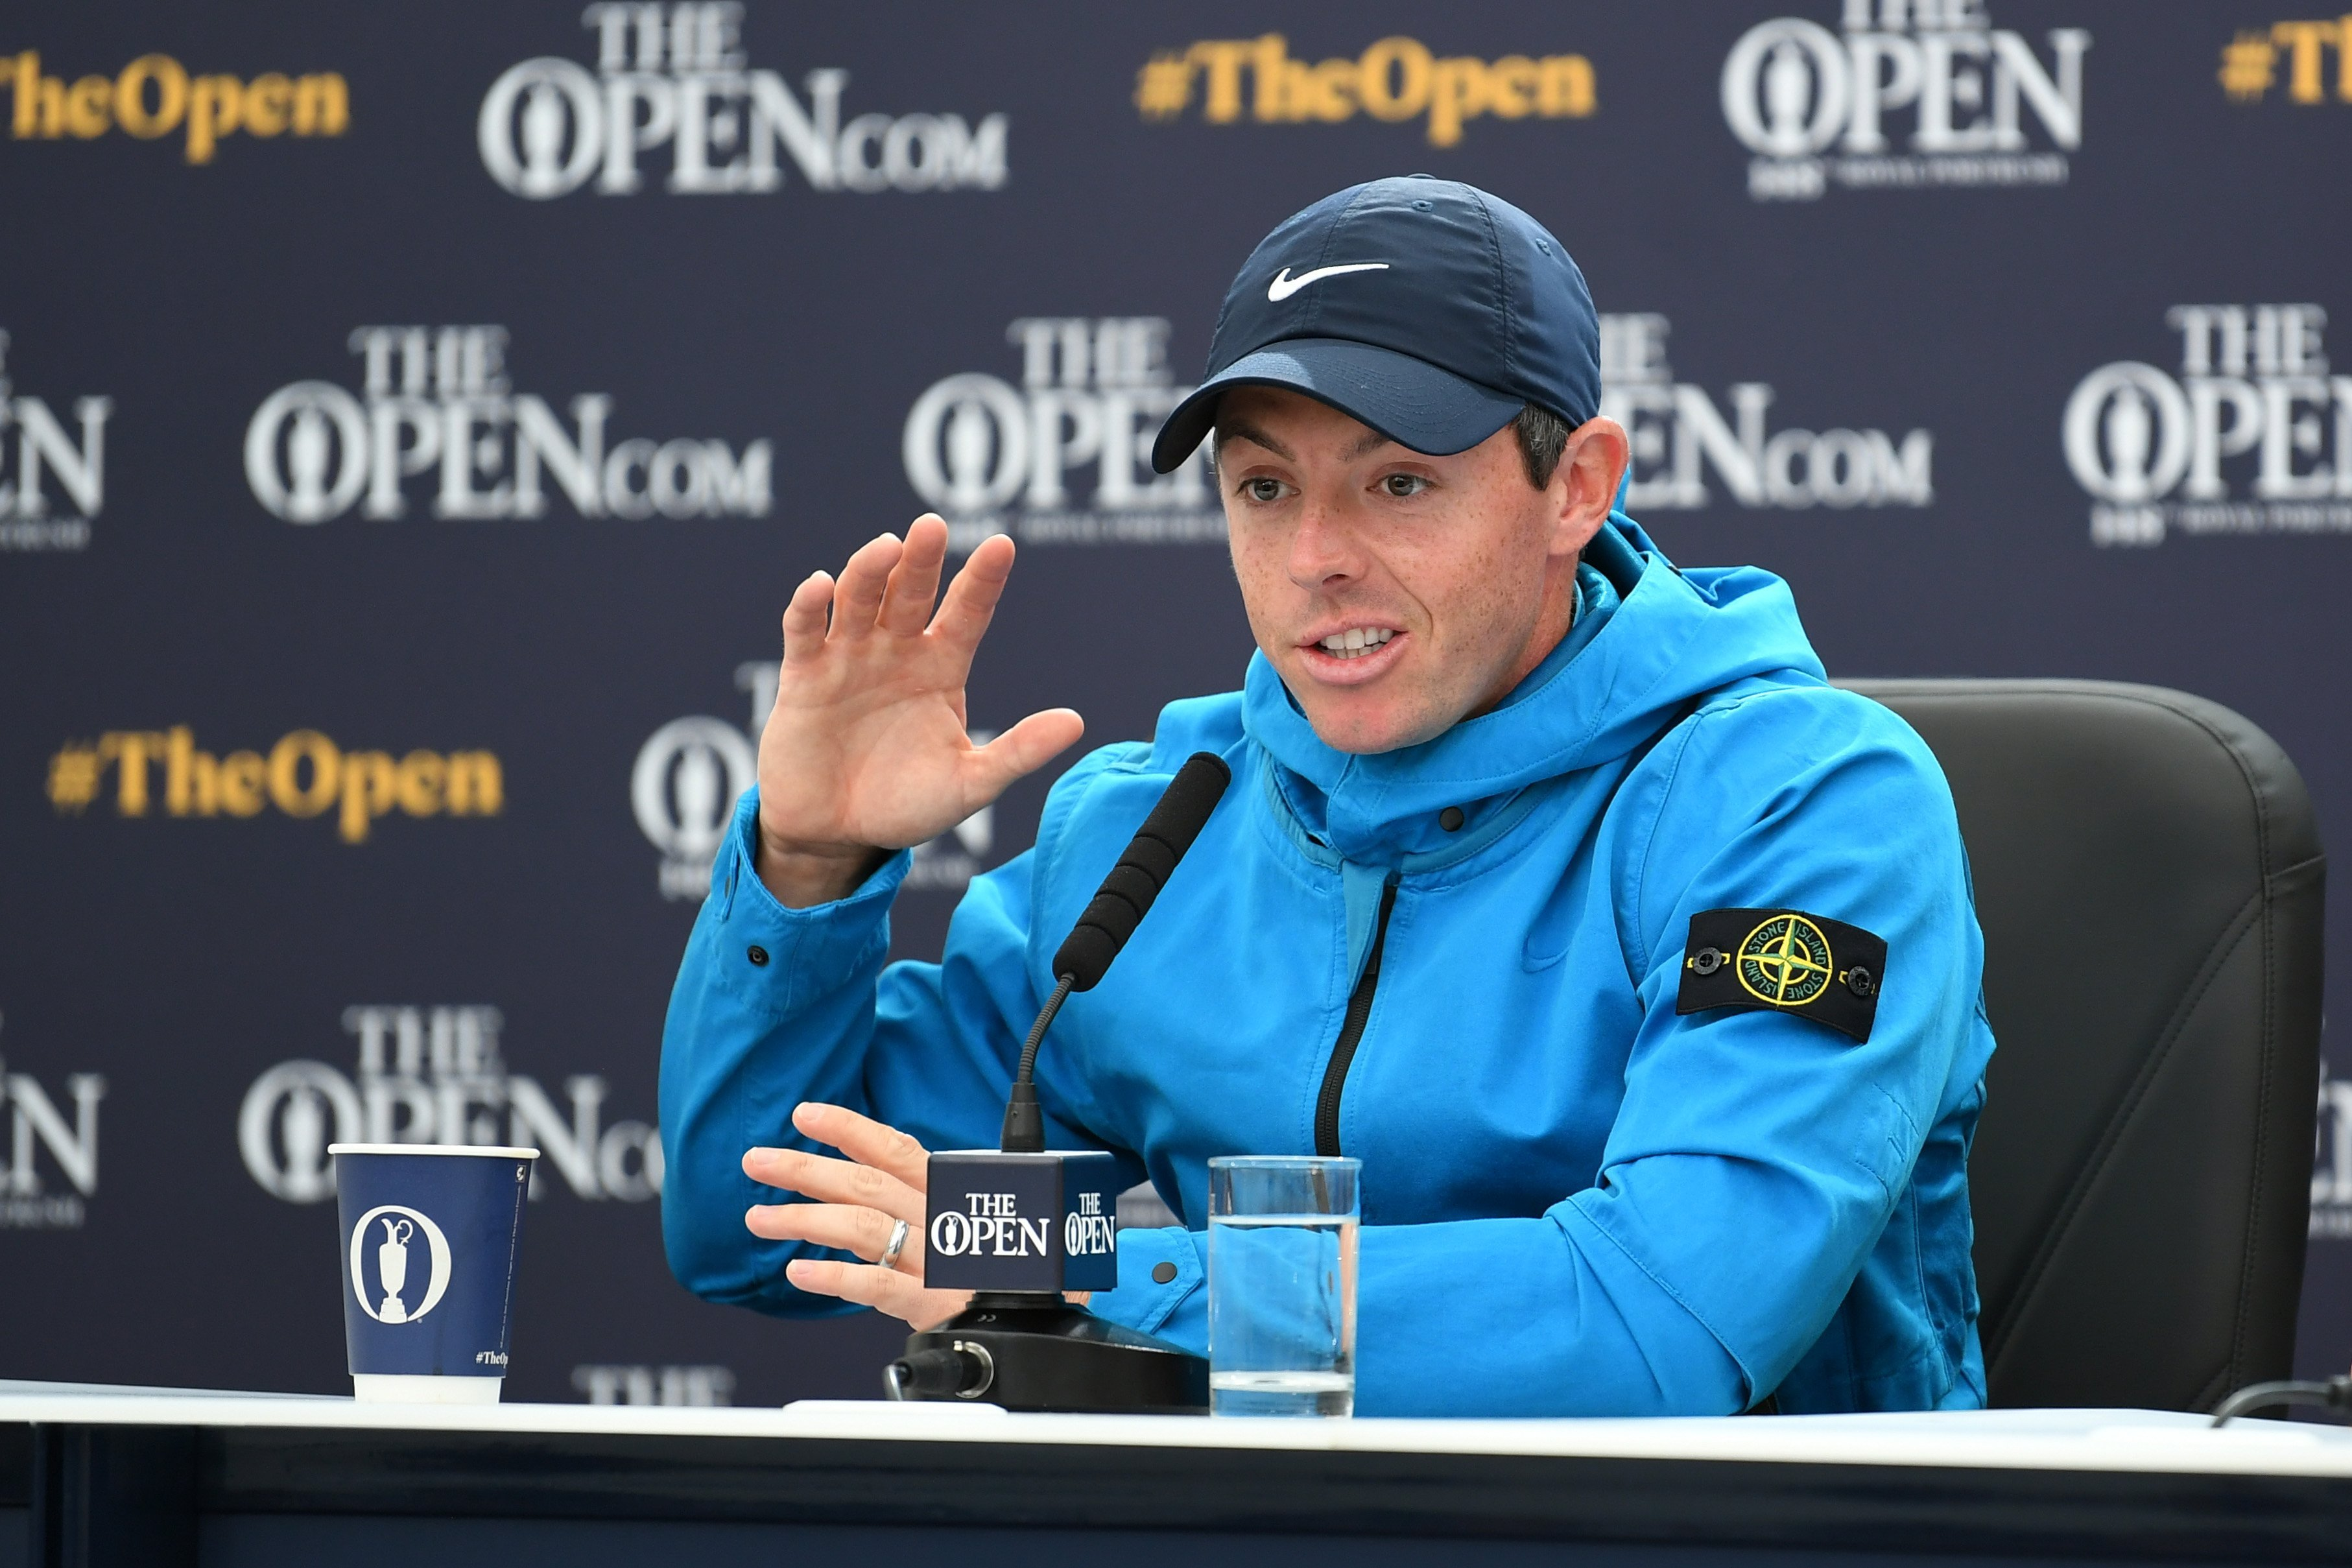 Rory McIlroy: Golf's 'Mozart' keen to 'smell the roses' in historic Open